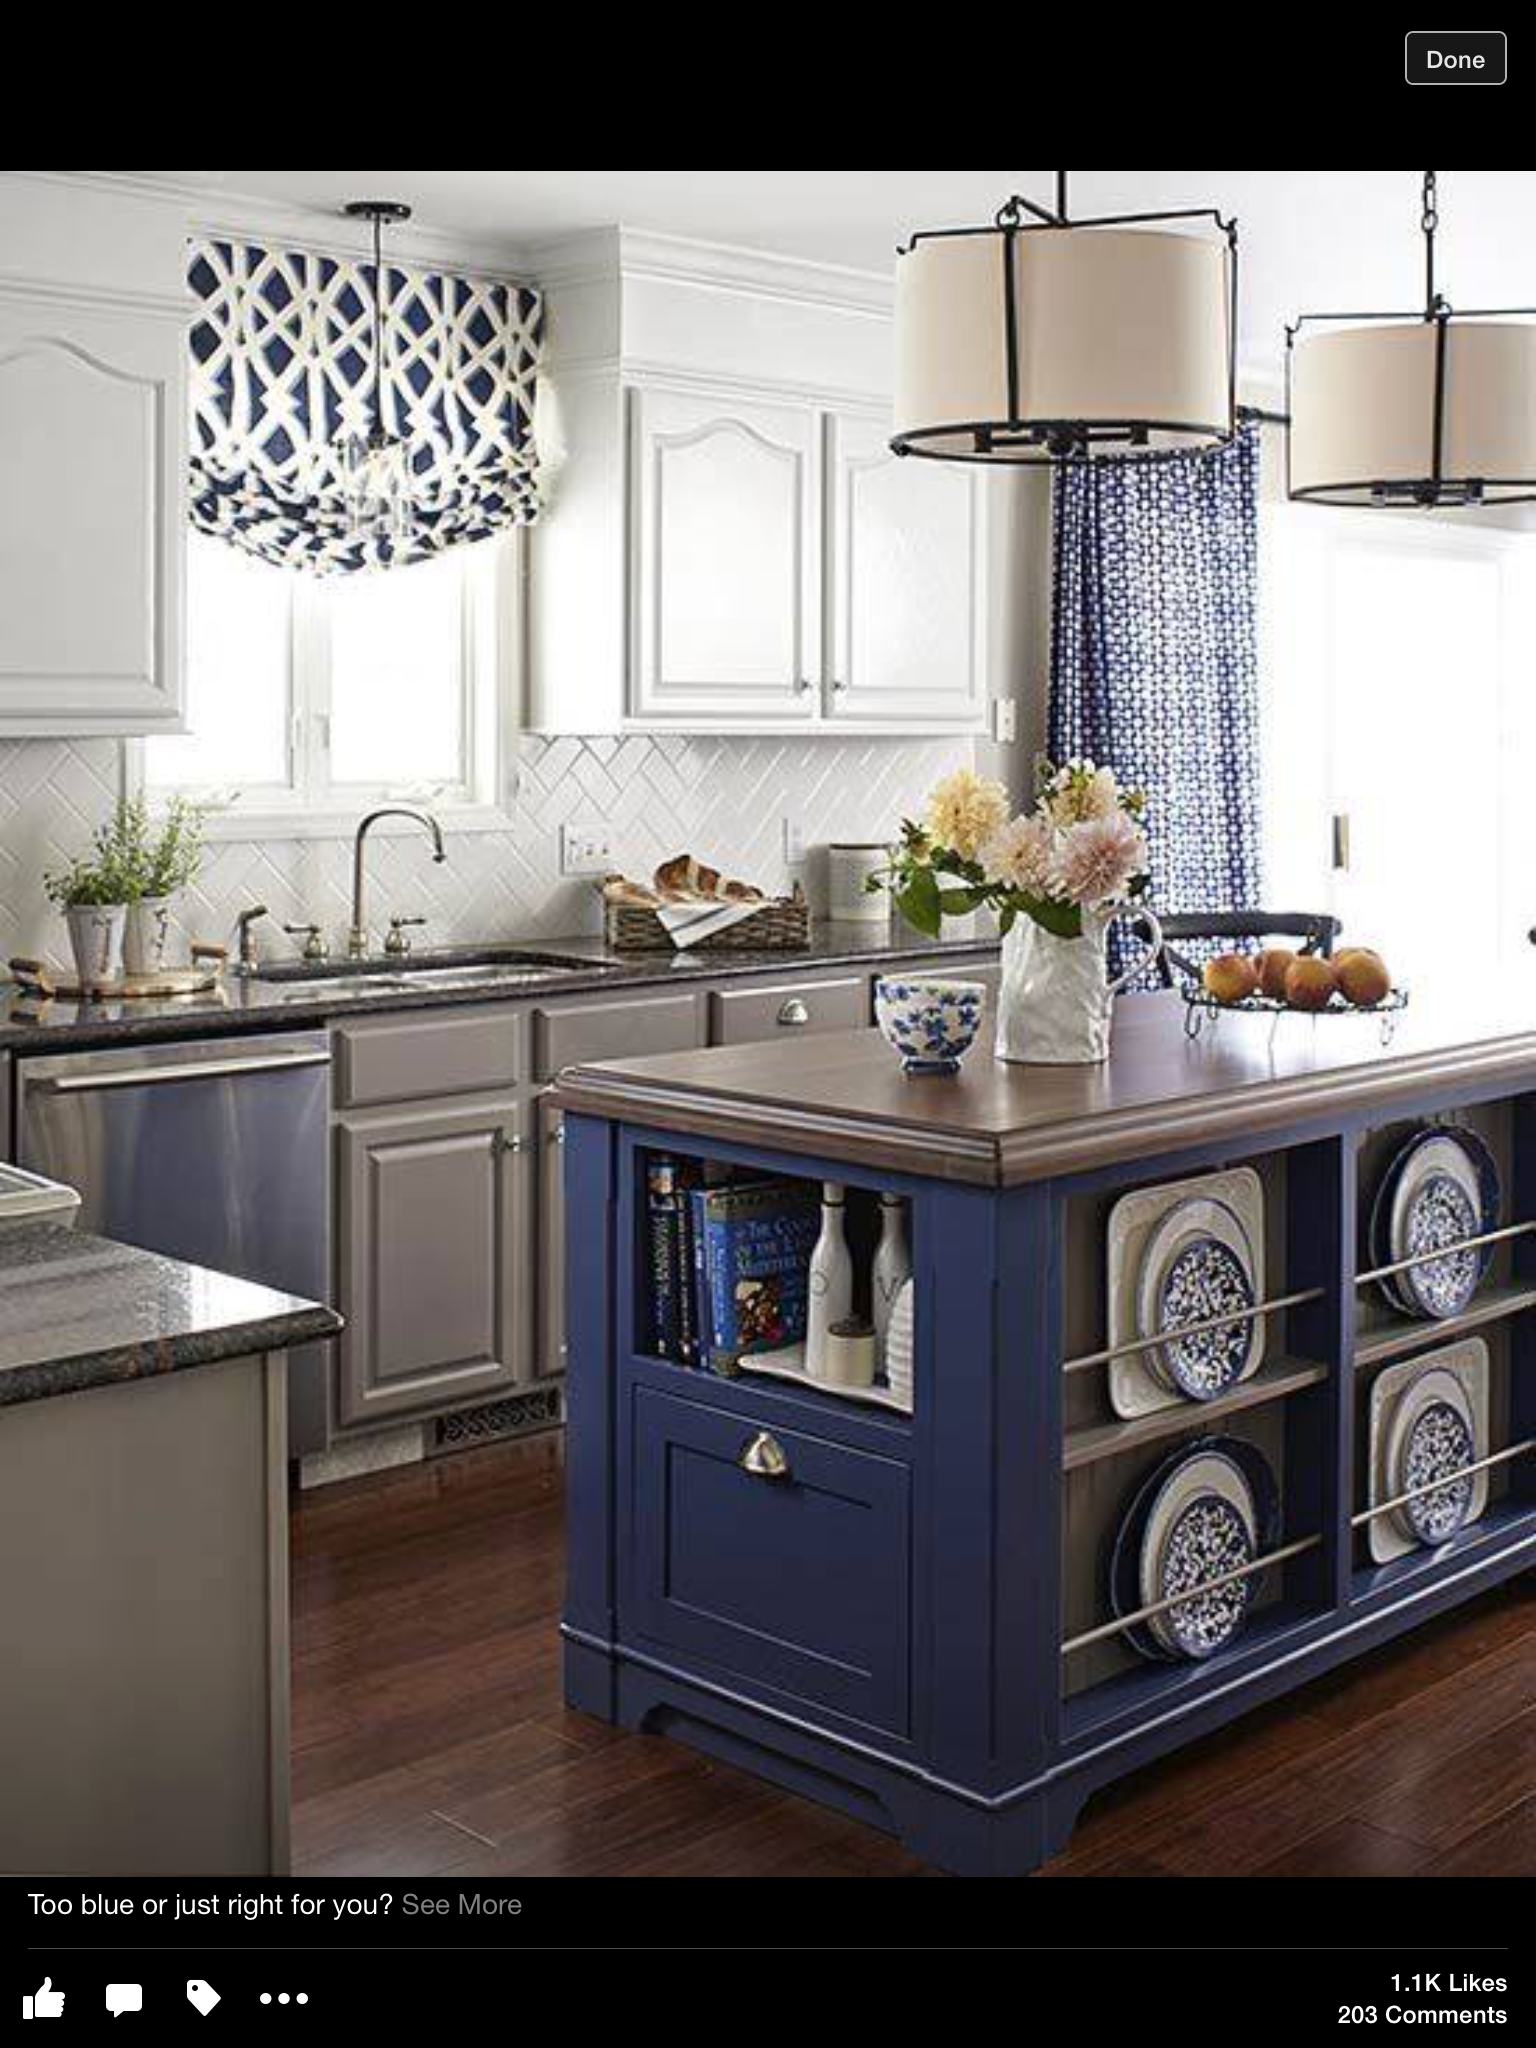 A Kitchen Island Is Comparable To A Great Piece Of Furniture. So Why Not  Give It A Splash Of Color? These Colorful Kitchen Islands Offer Stunning  Work Space ...